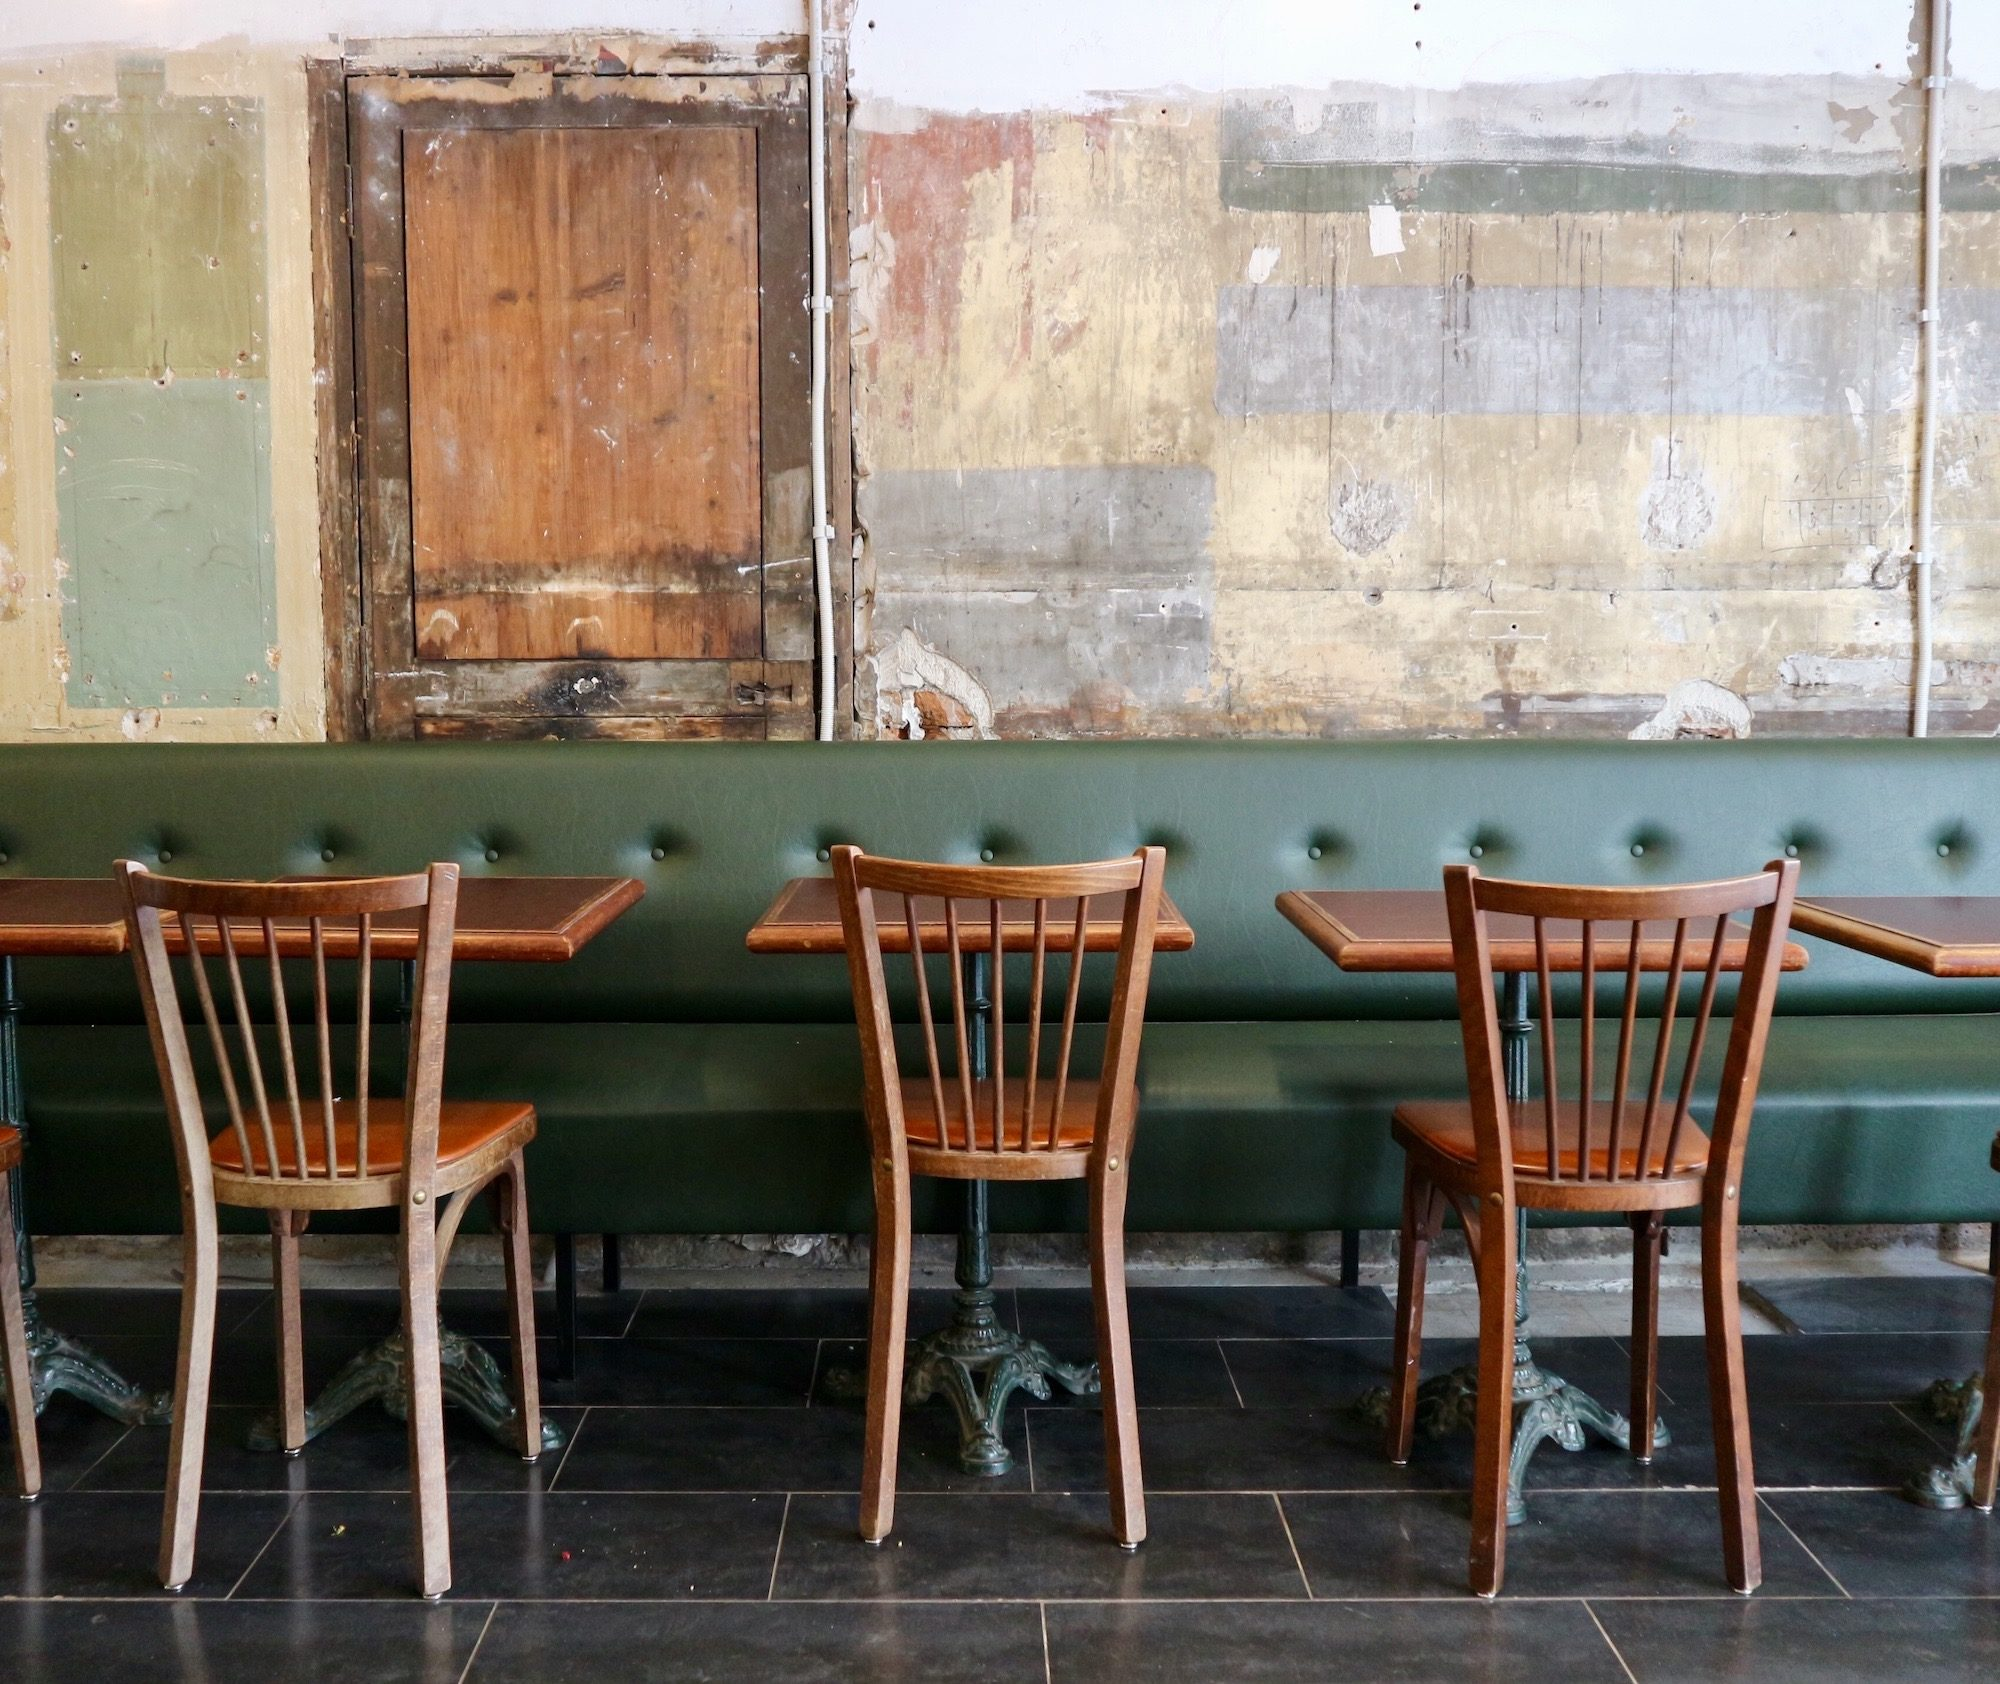 Interfabric restaurant in Paris' Batignolles neighbourhood comes with shabby chic interiors, wooden bistro tables and green leather banquettes.